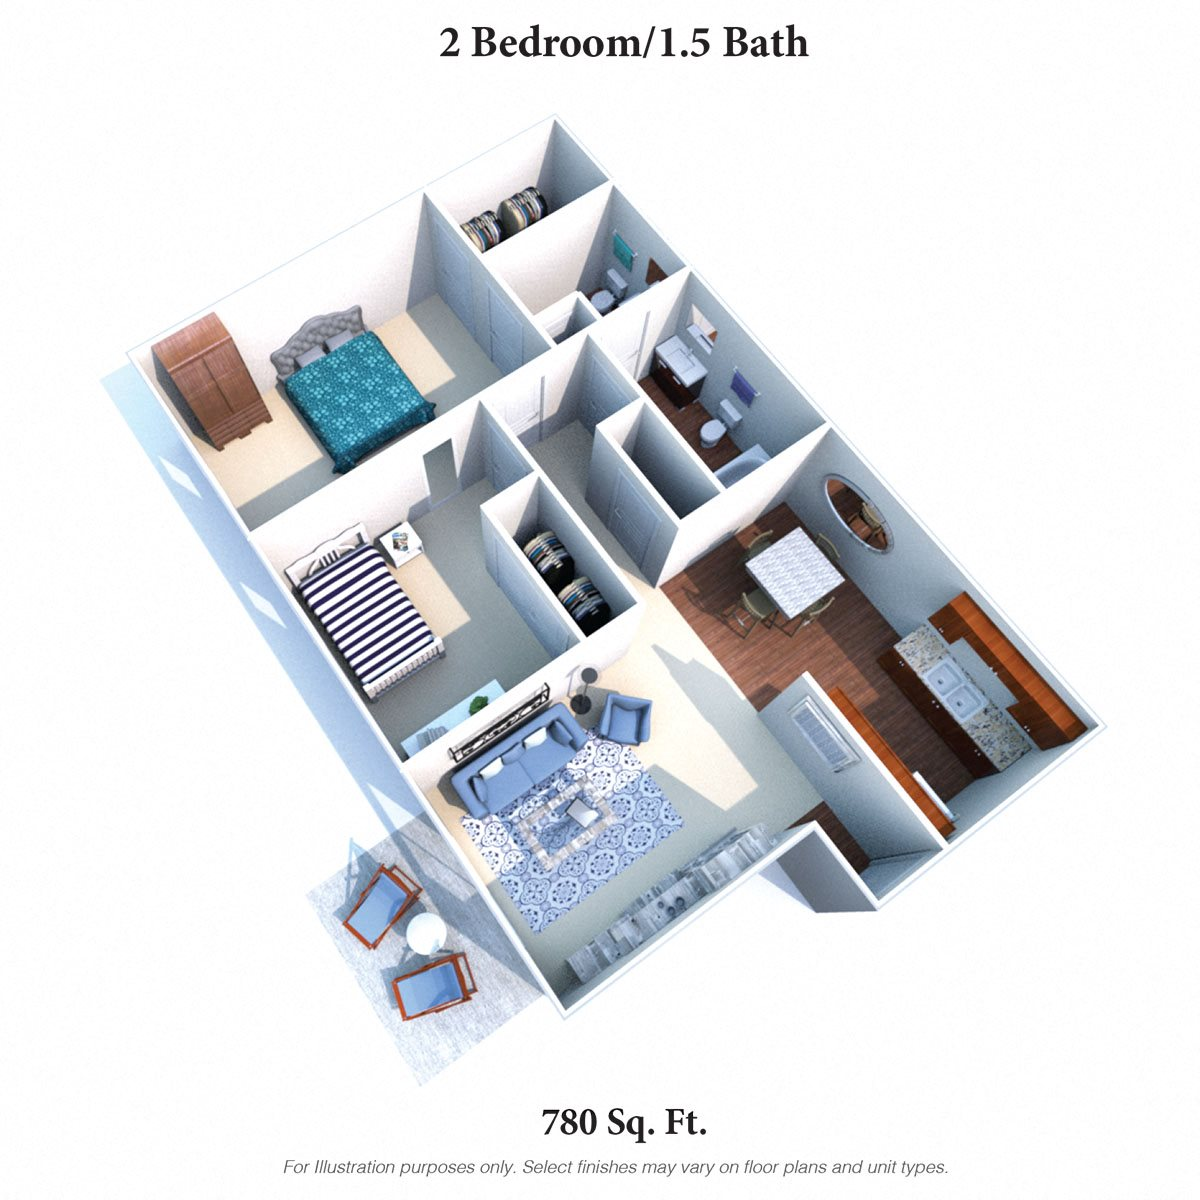 2 Bedrooms 1.5 Baths Floor Plan 3